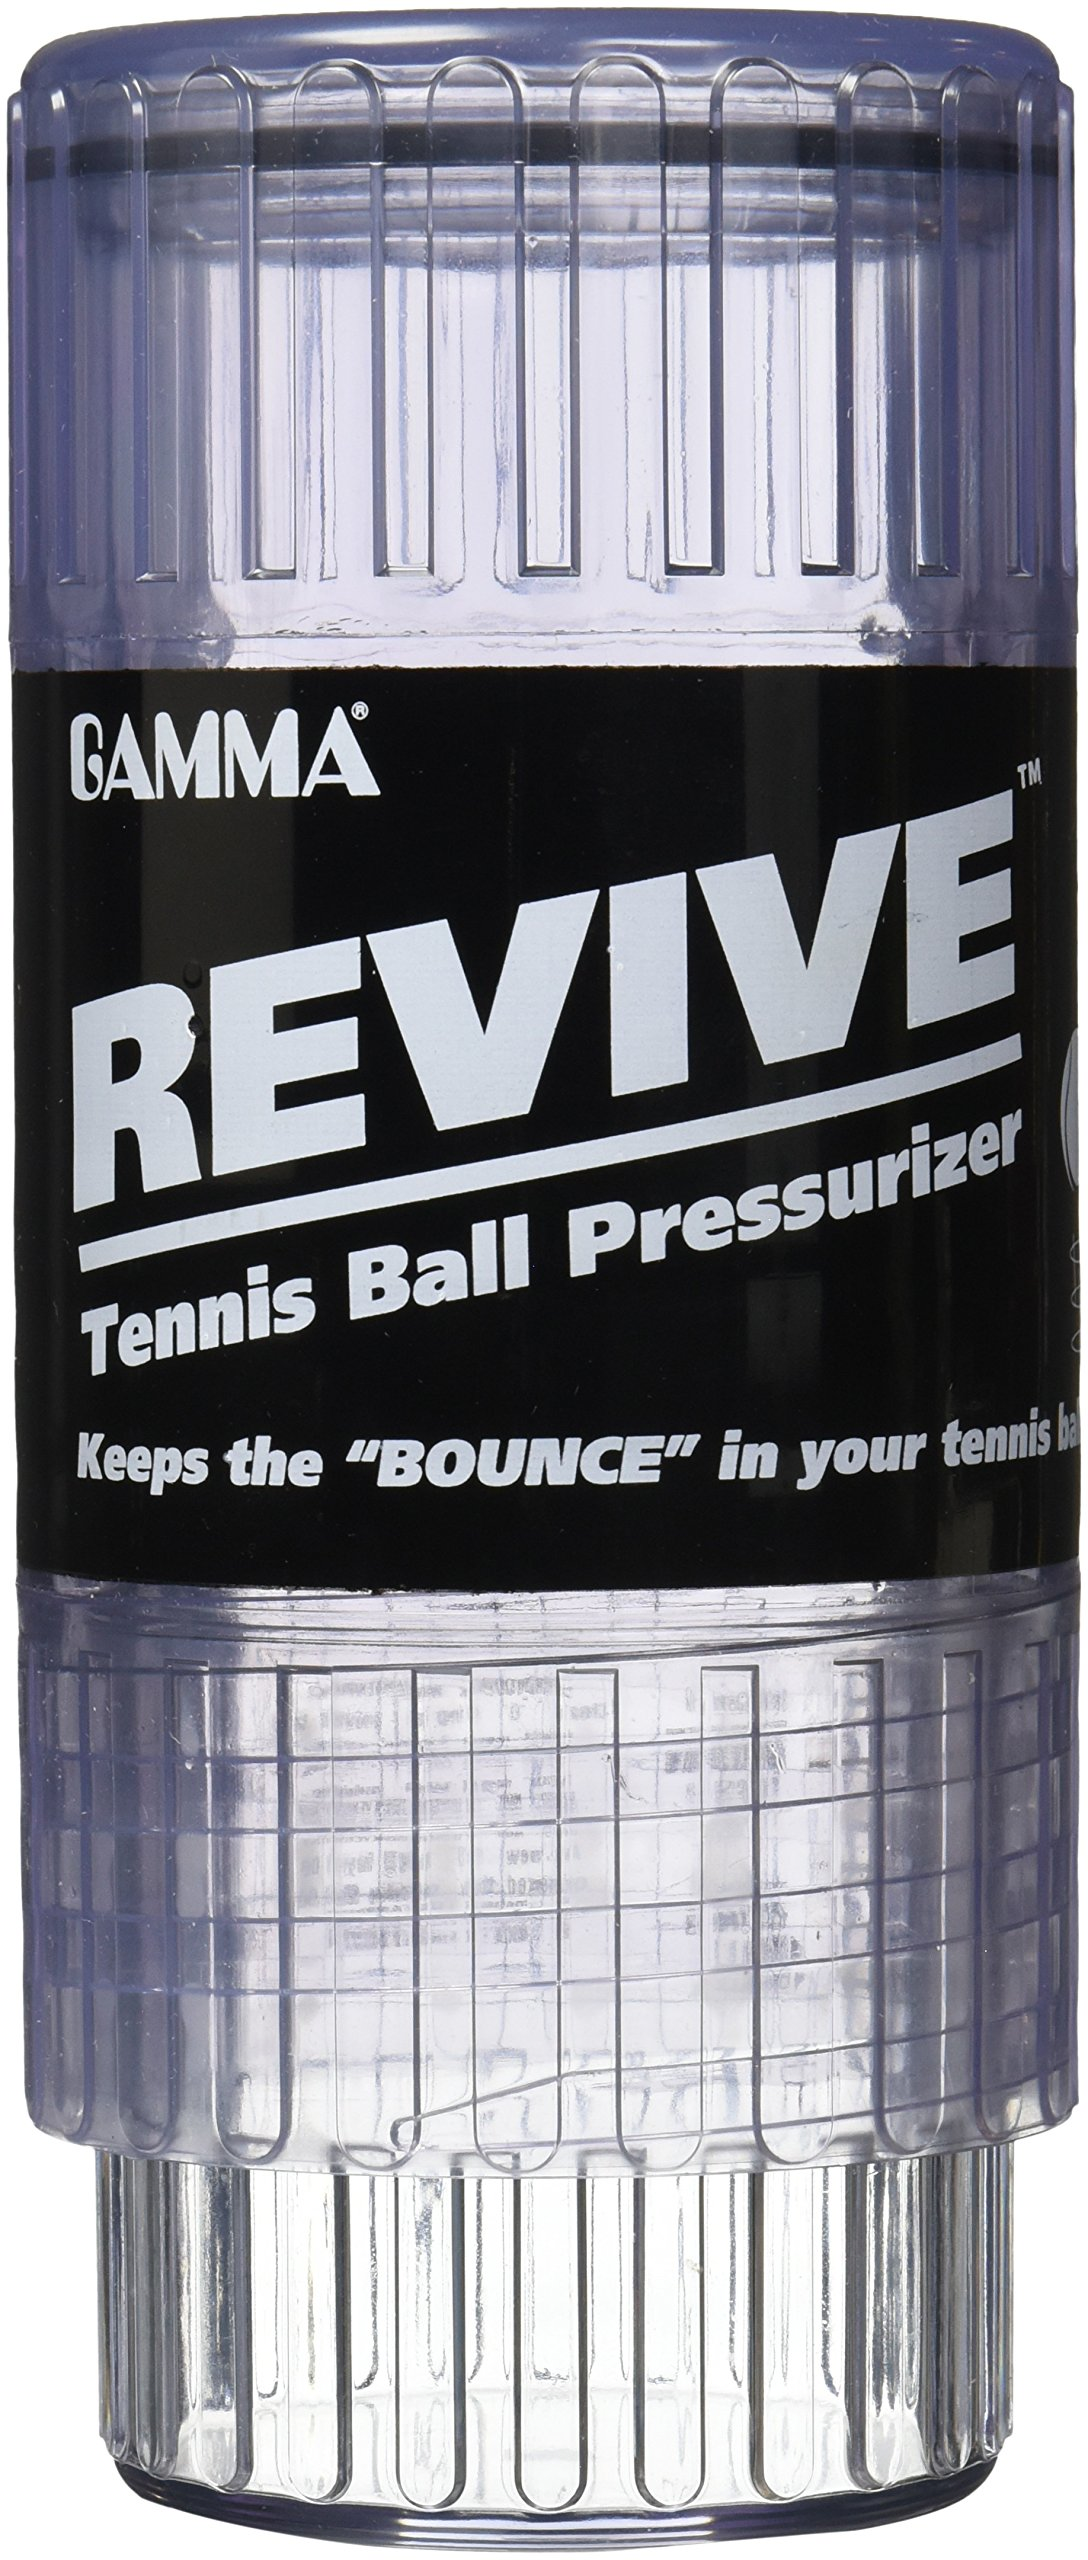 Gamma Revive Tennis Ball Pressurizer – Pressurized Ball Saver Storage Canister, Keeps Balls Fresh, Preserves and Restores New Ball Bounce